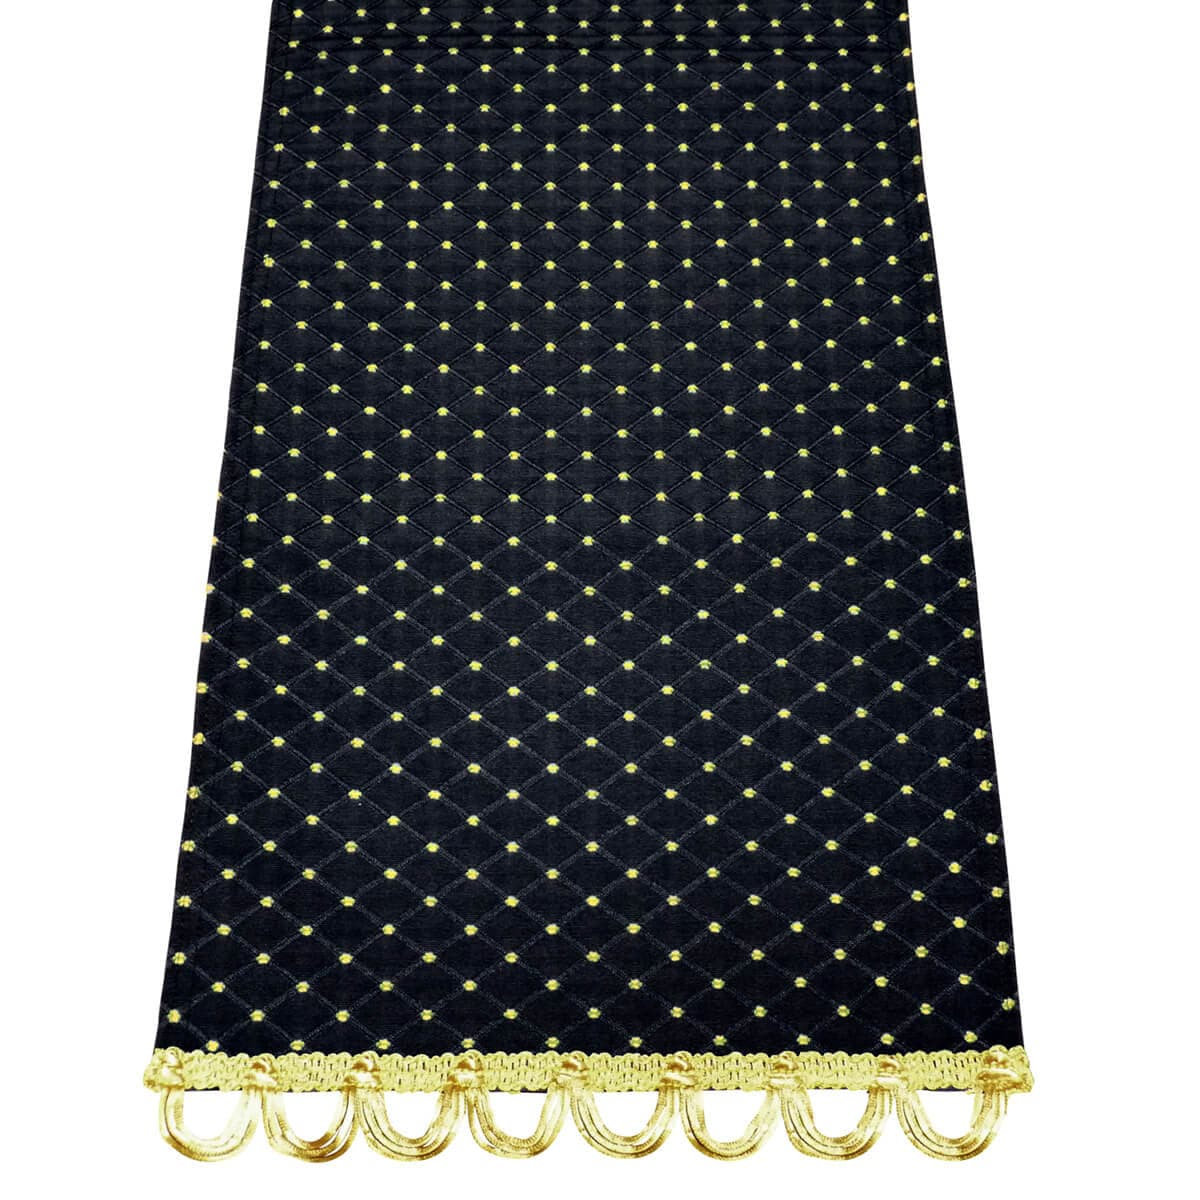 "Tiffanie Black Brocade 72"" Table Runner - with Trim"